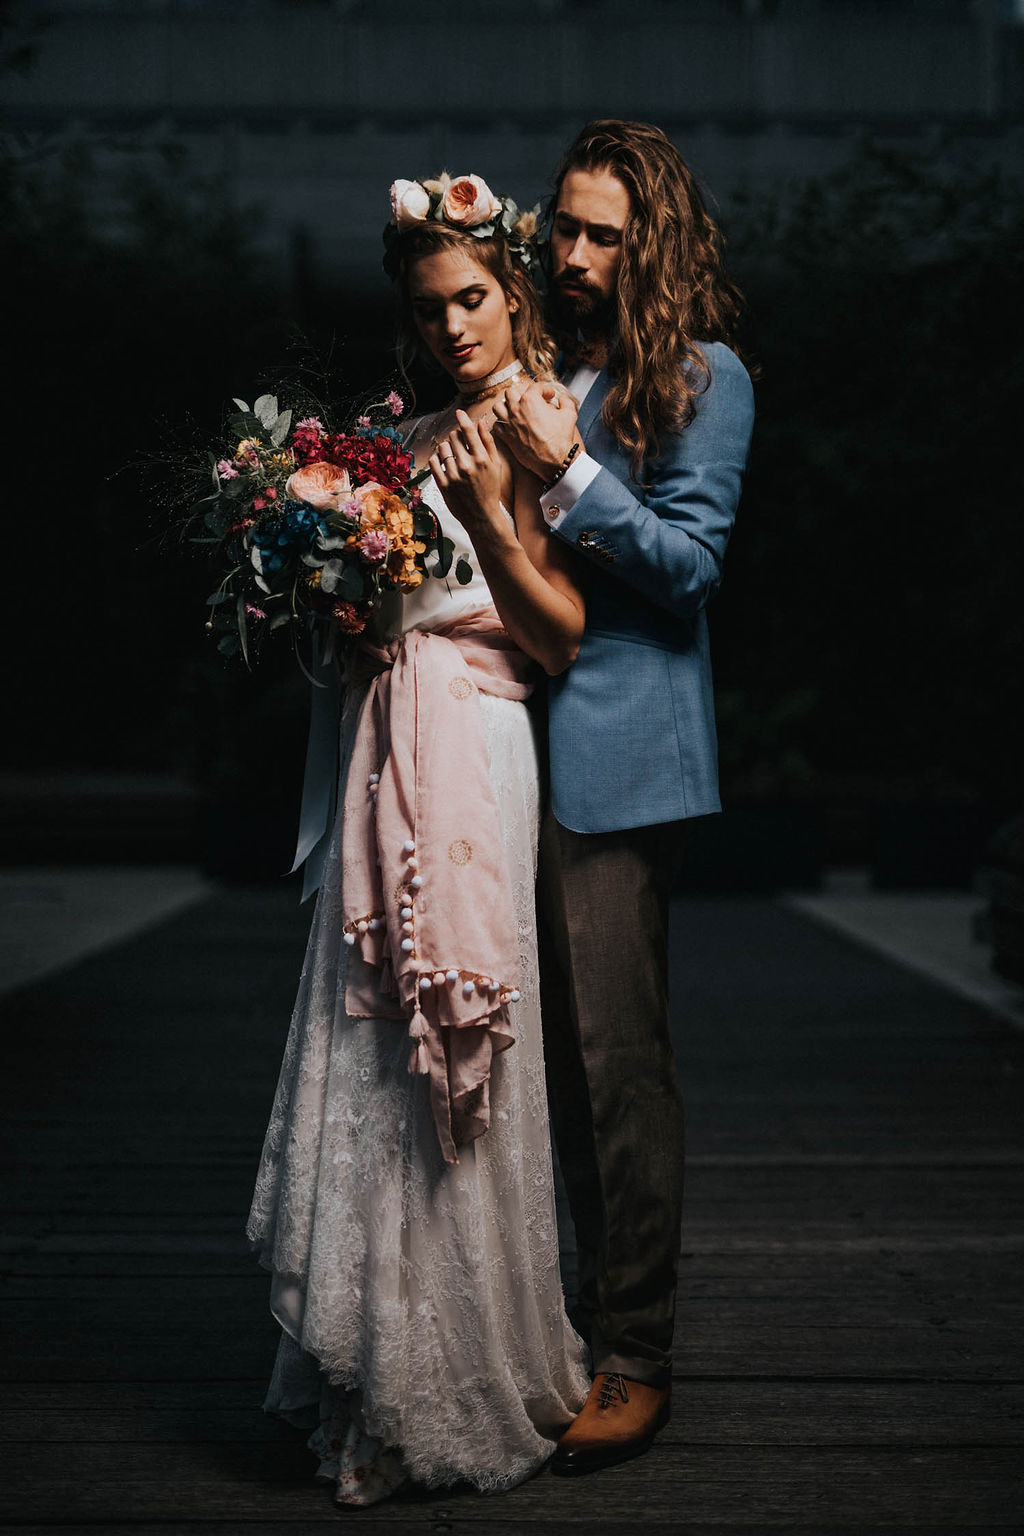 2_23_boheme_couple_4_looks_sidneyonthemoon_photographe_chrisvonmartial_robe_mariee_costume_paris_wedding_web.jpg